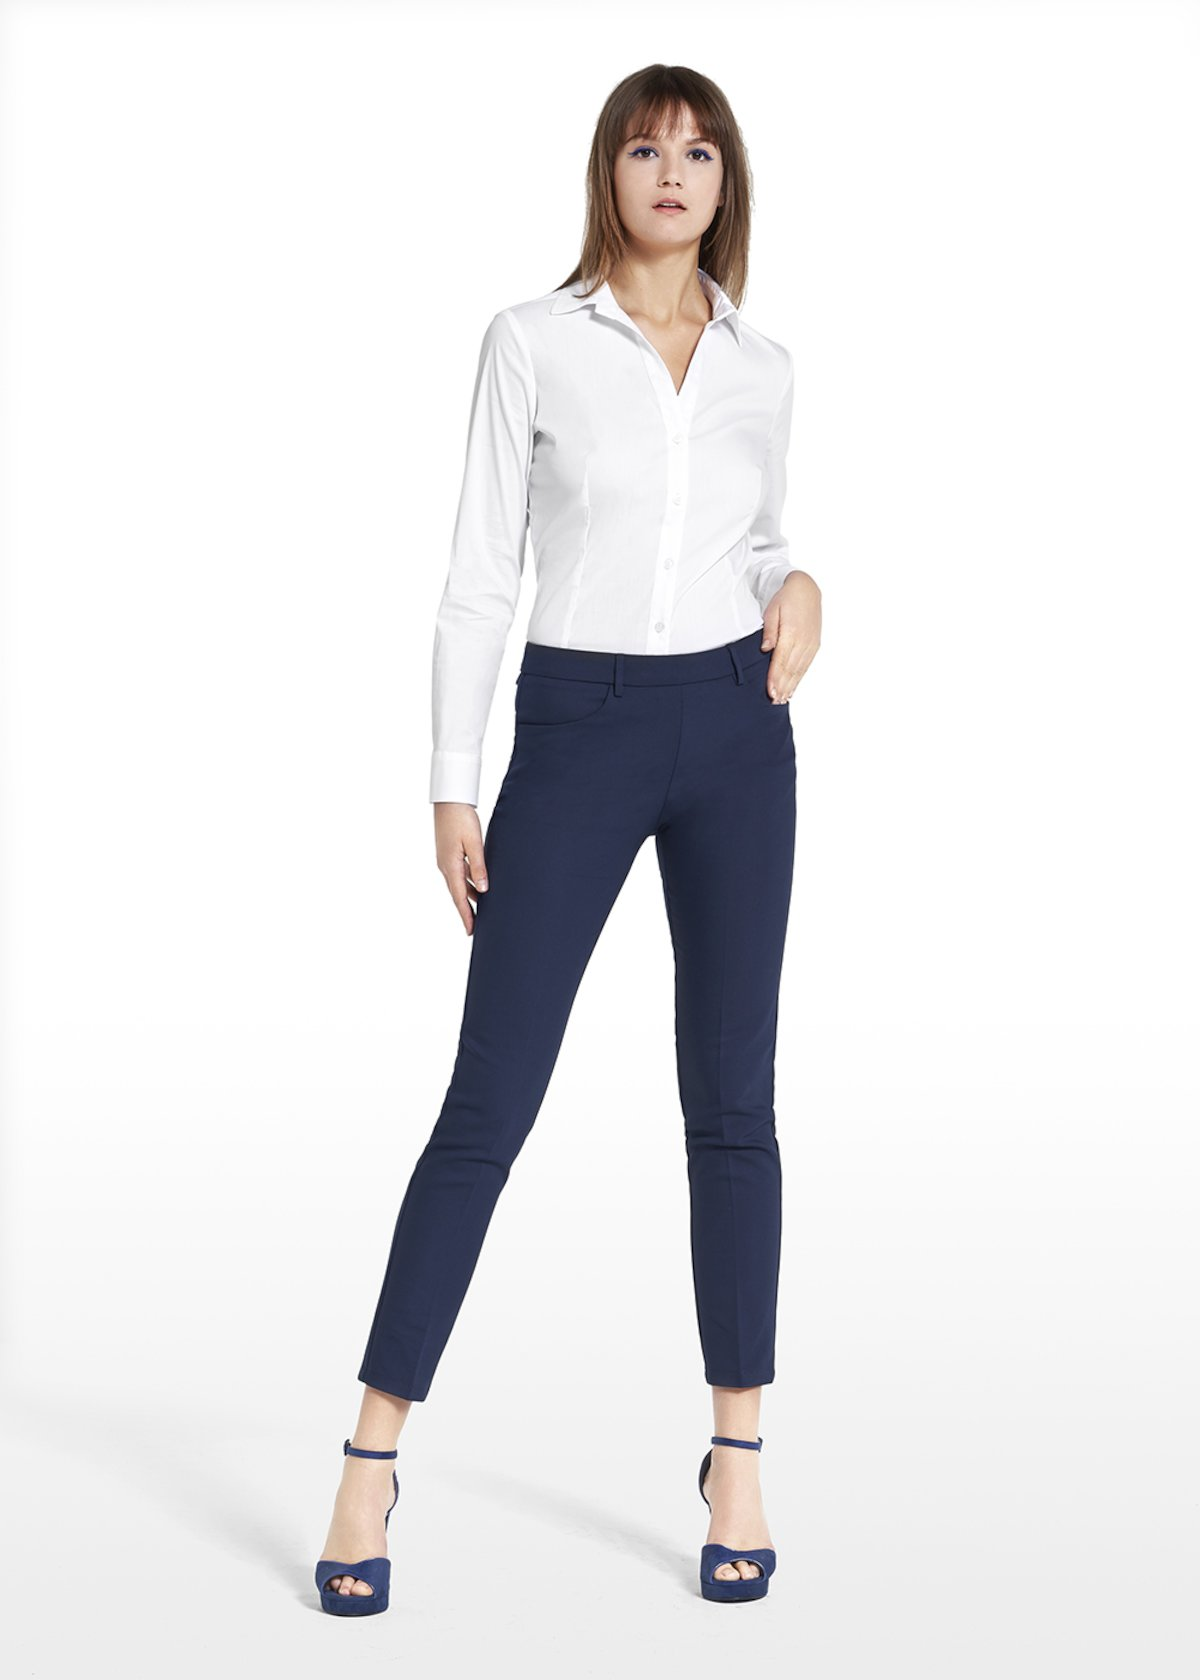 Equestrian pants Scarlett in technical fabric - Medium Blue - Woman - Category image